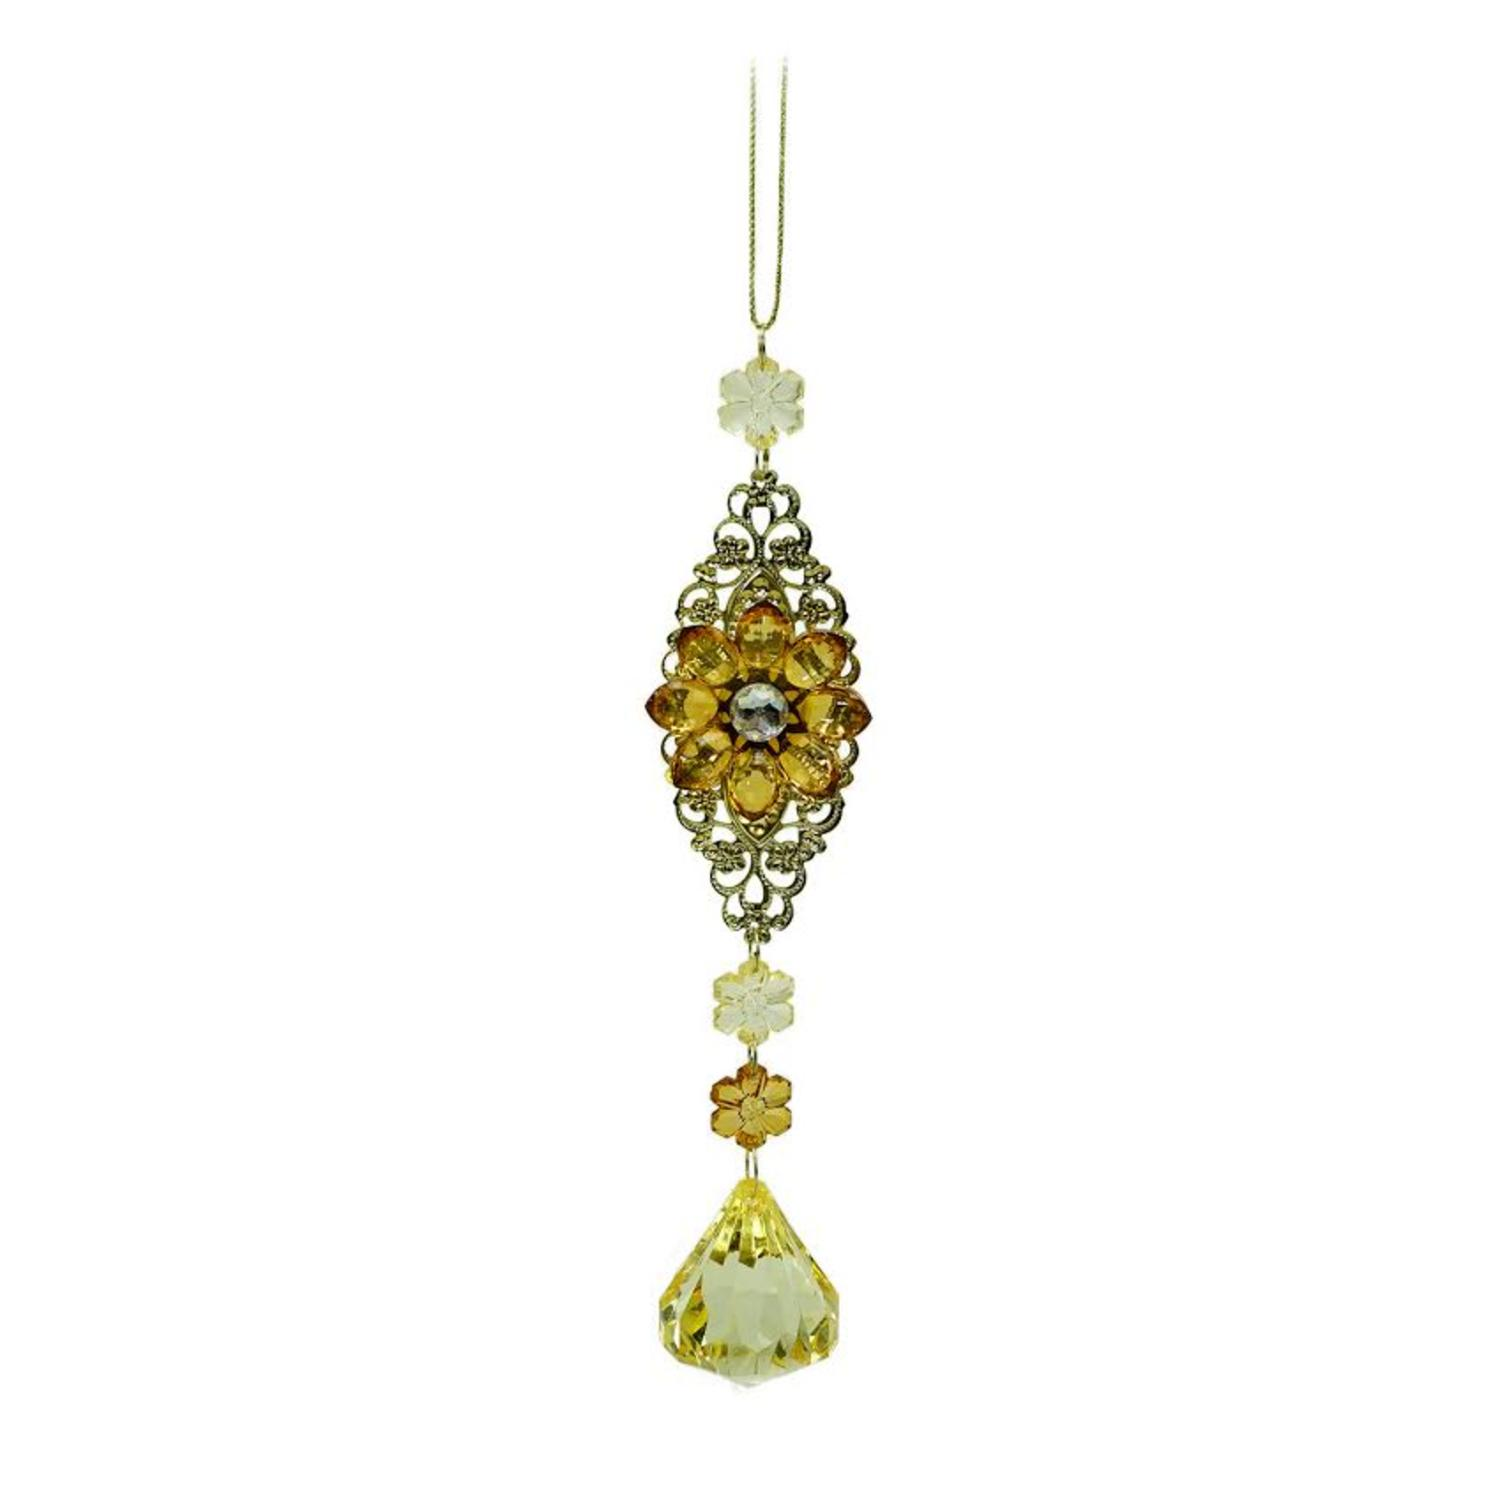 "7"" Luxury Lodge Gold with Amber and Honey Flower Drop Christmas Ornament - image 2 de 2"